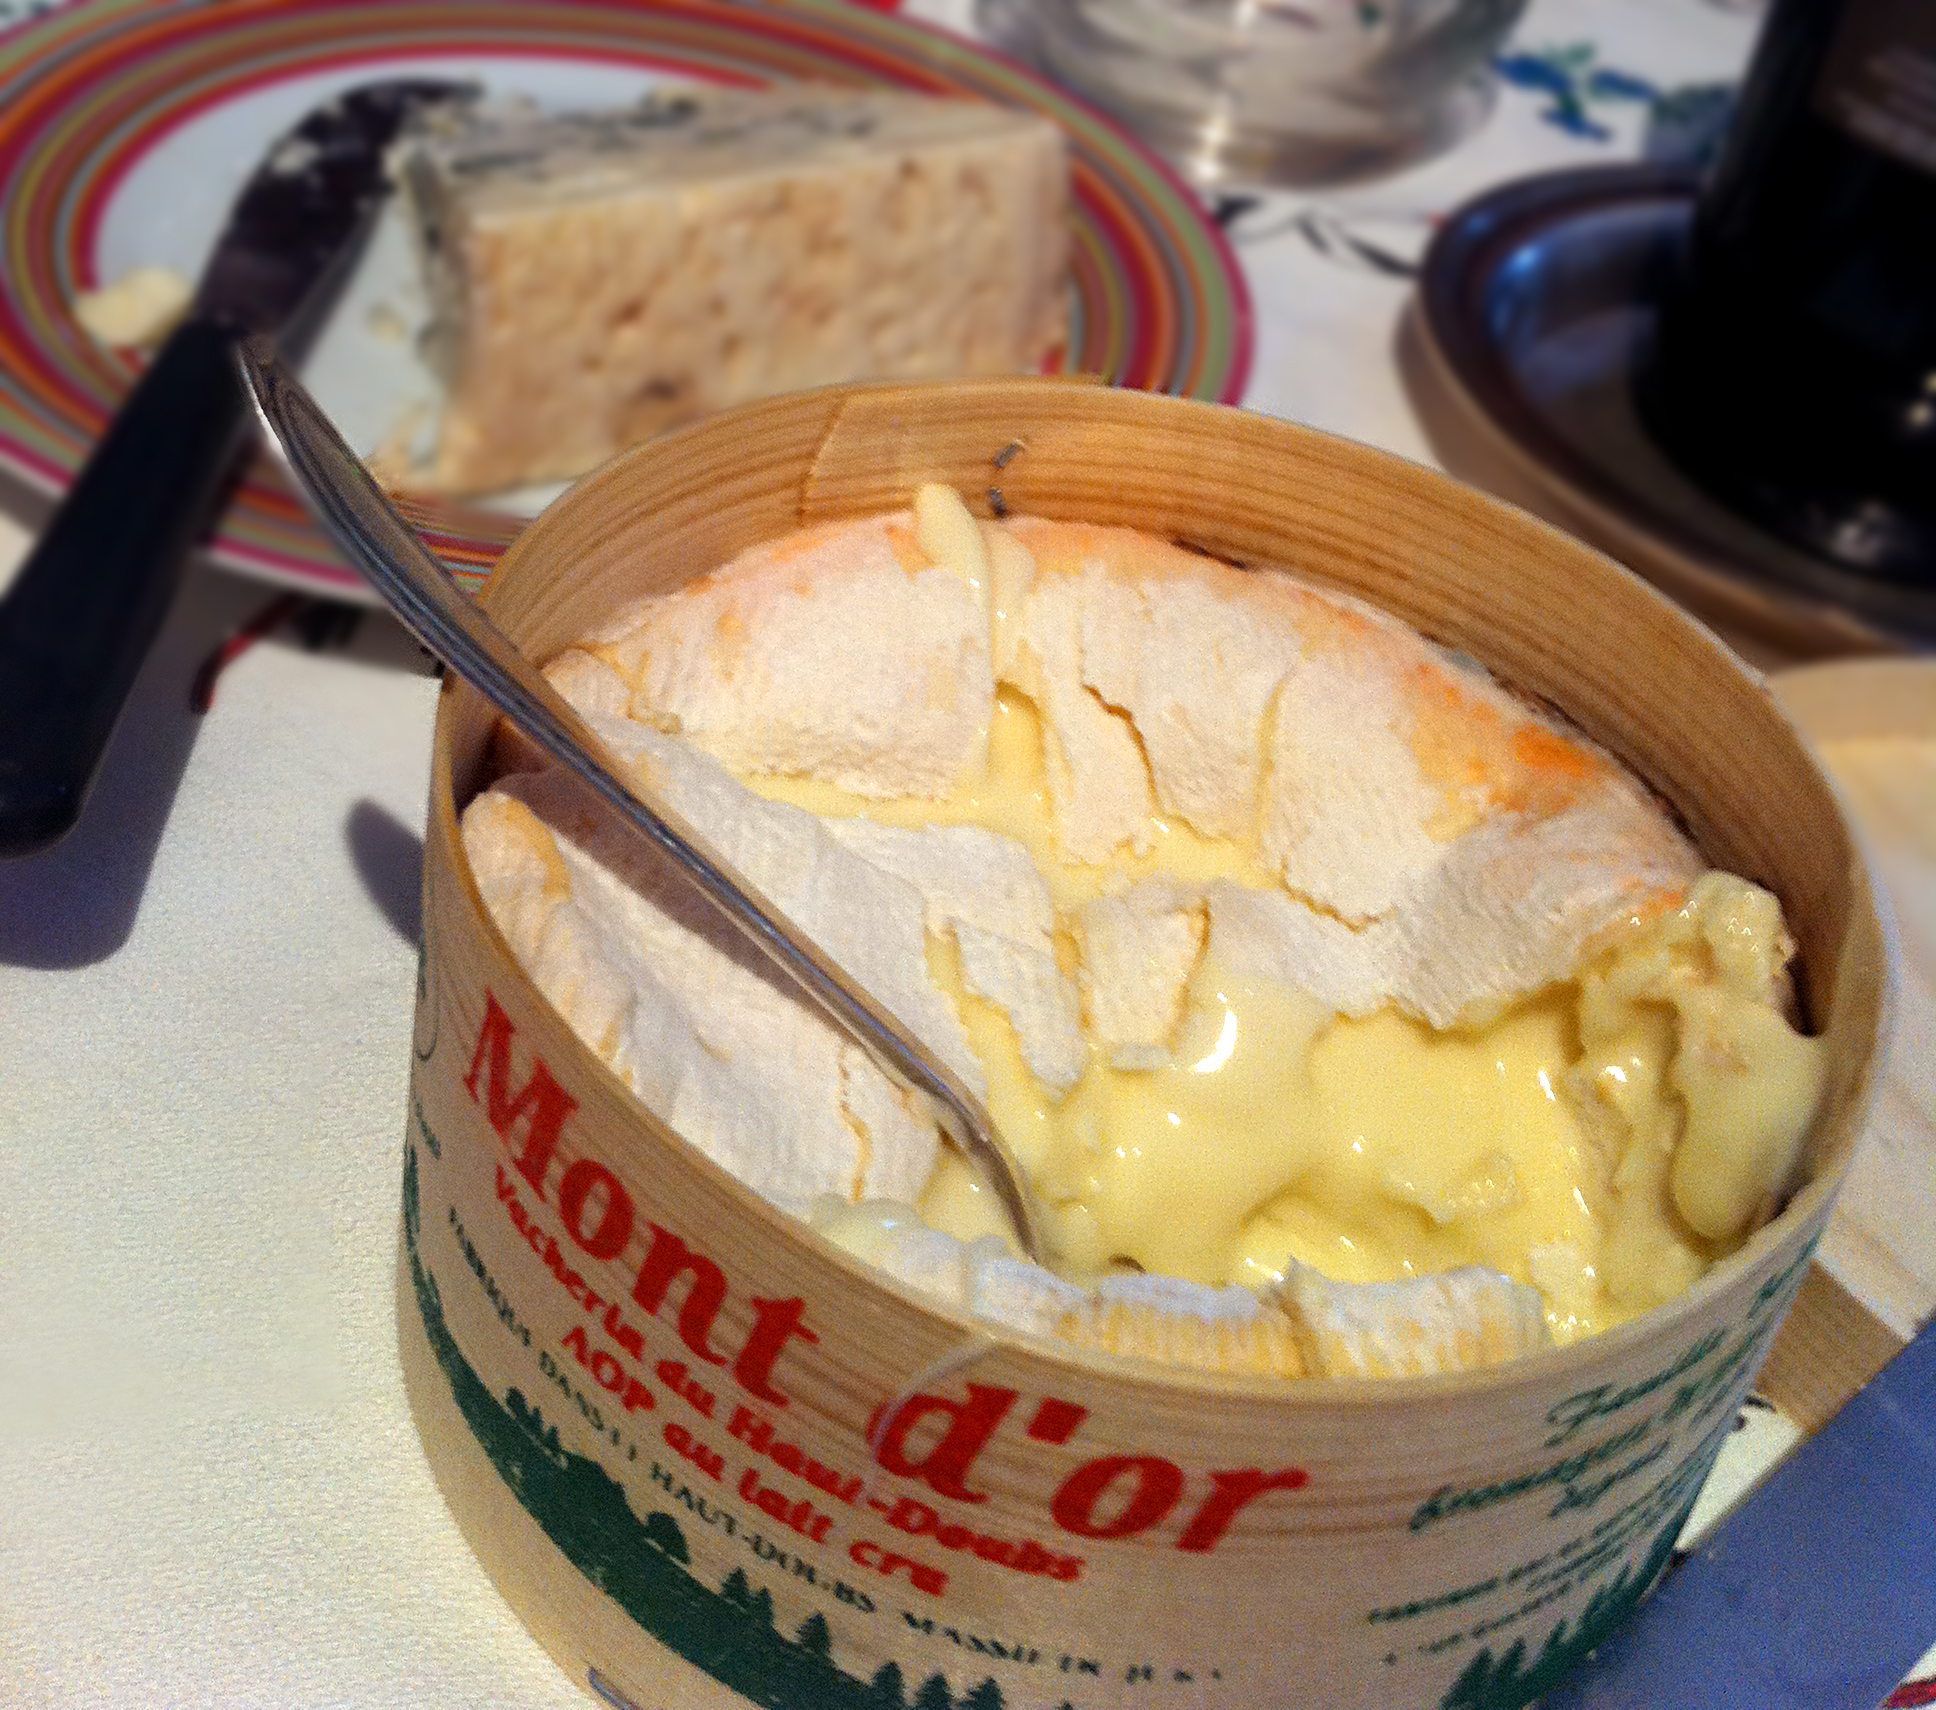 Mont d or french for foodies - Mont d or fromage ...